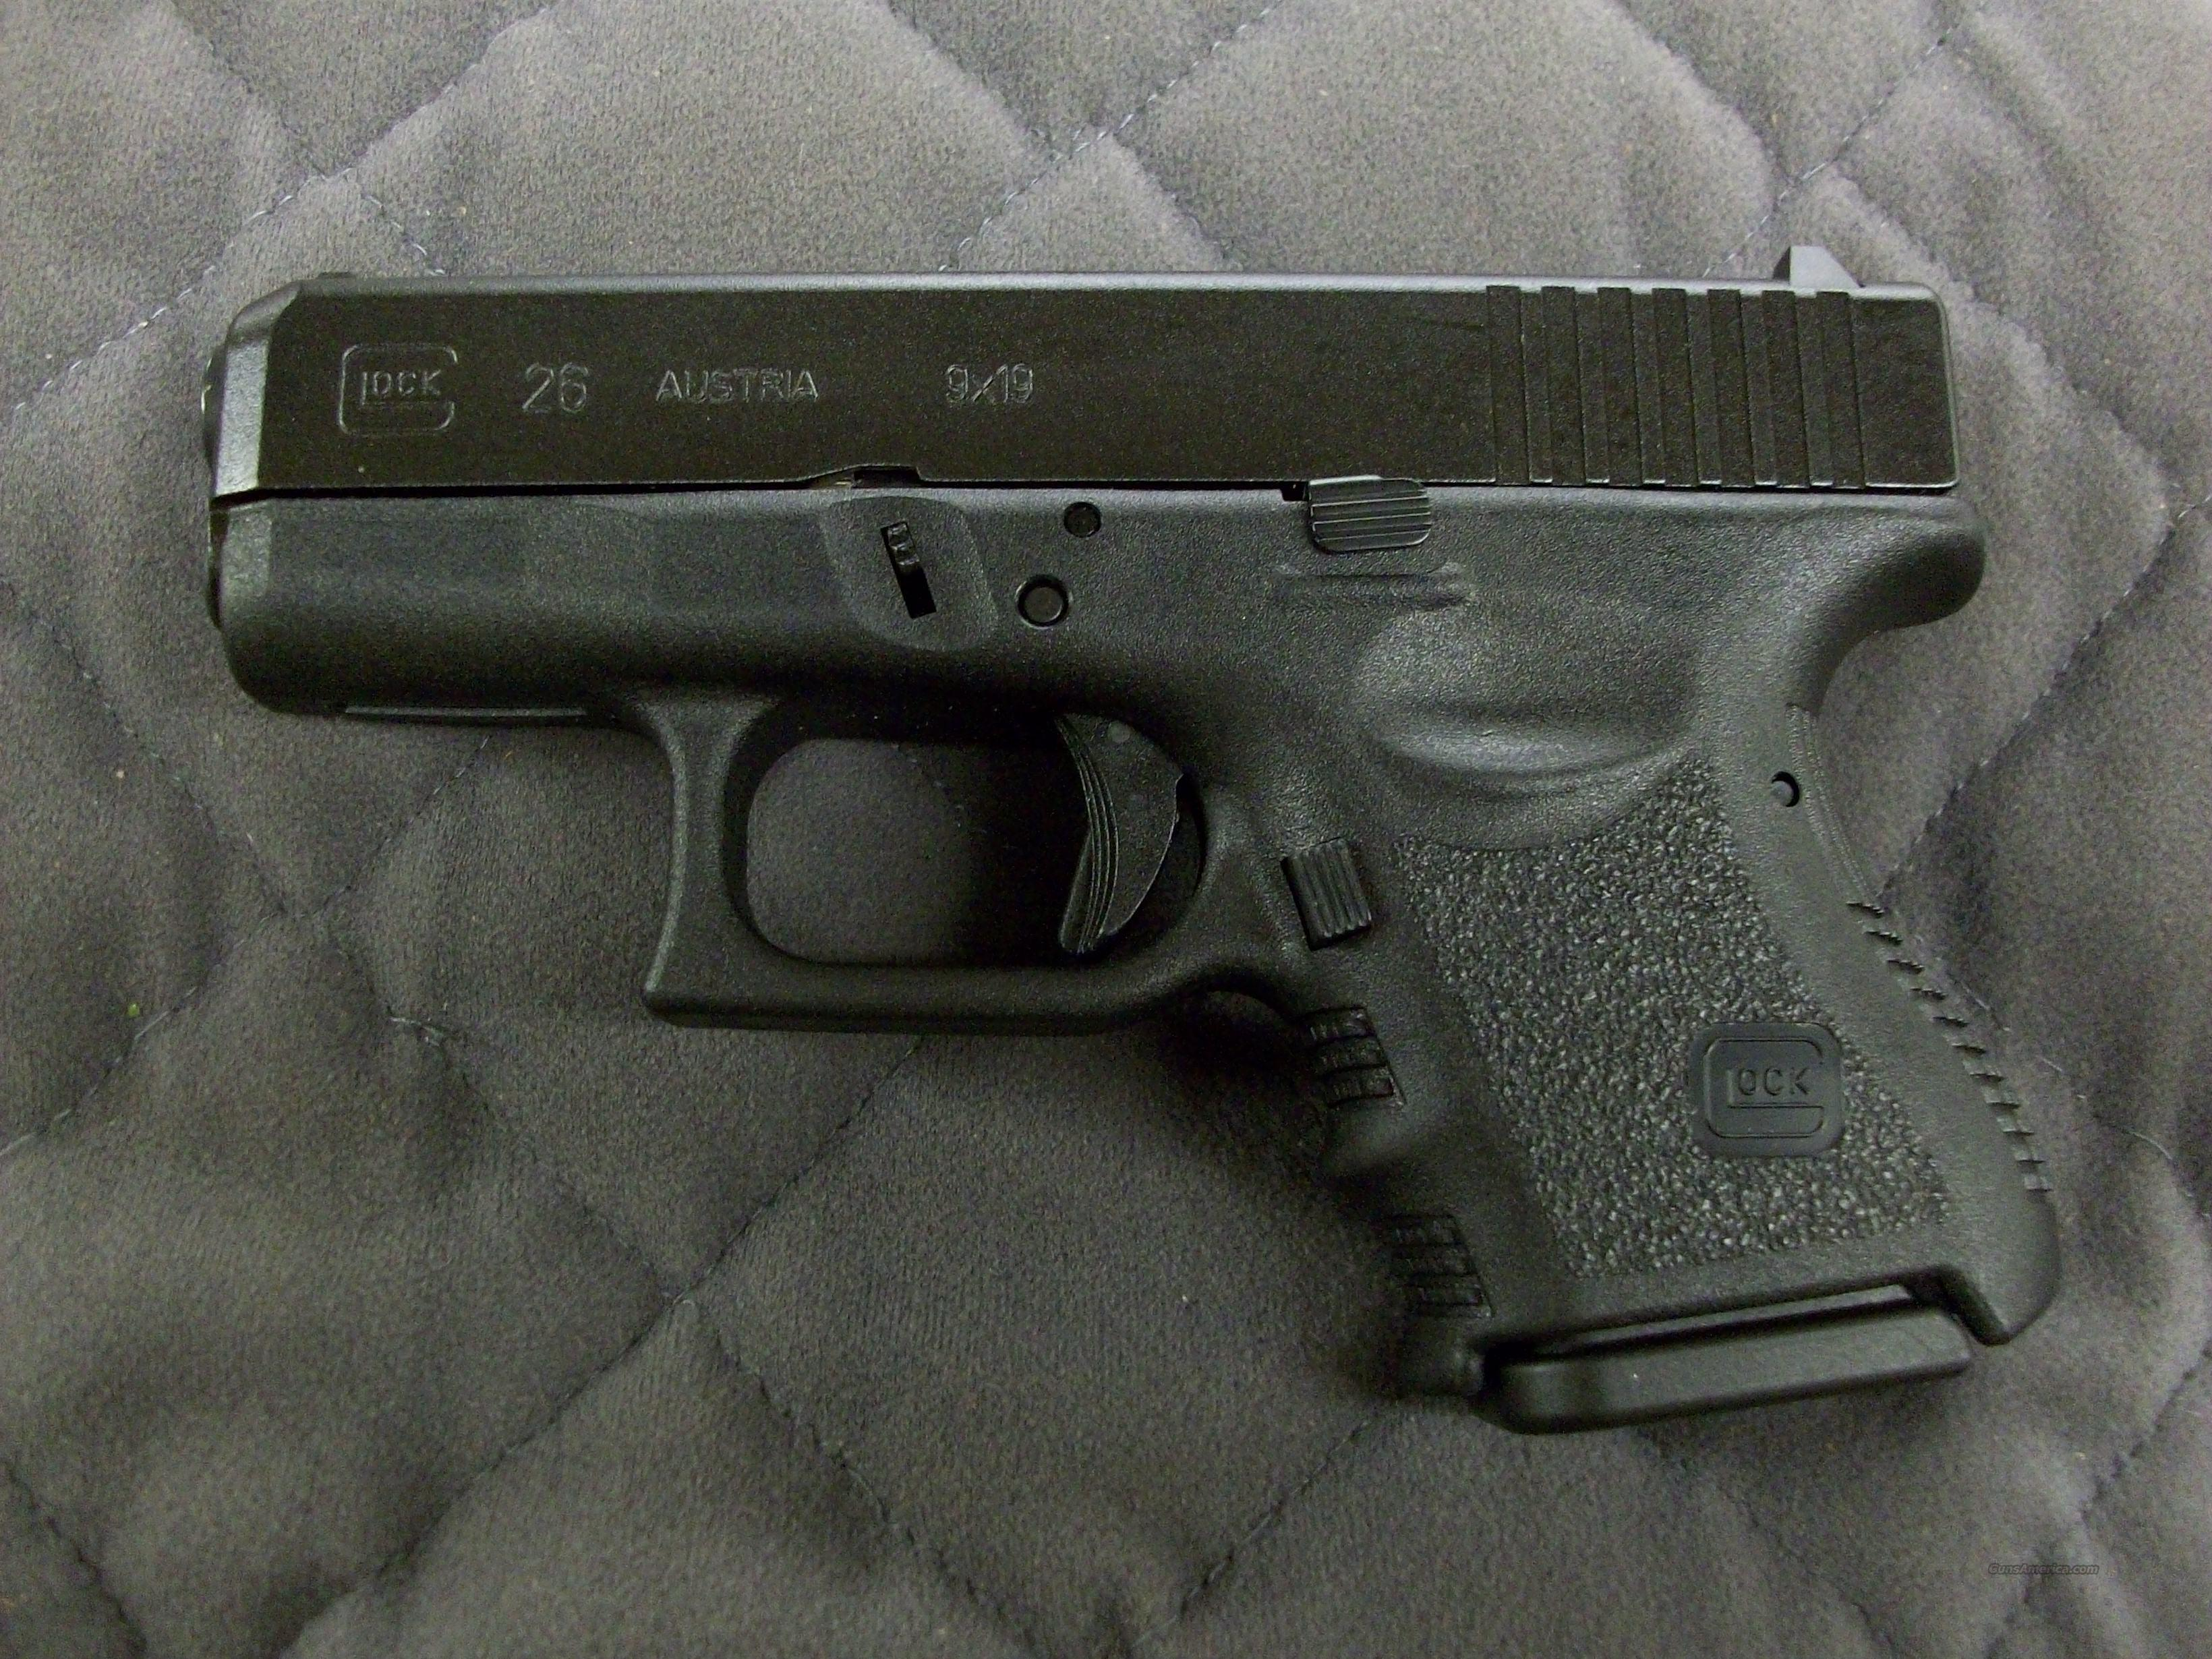 Glock 26 9 mm Subcompact  **NEW**  Guns > Pistols > Glock Pistols > 26/27